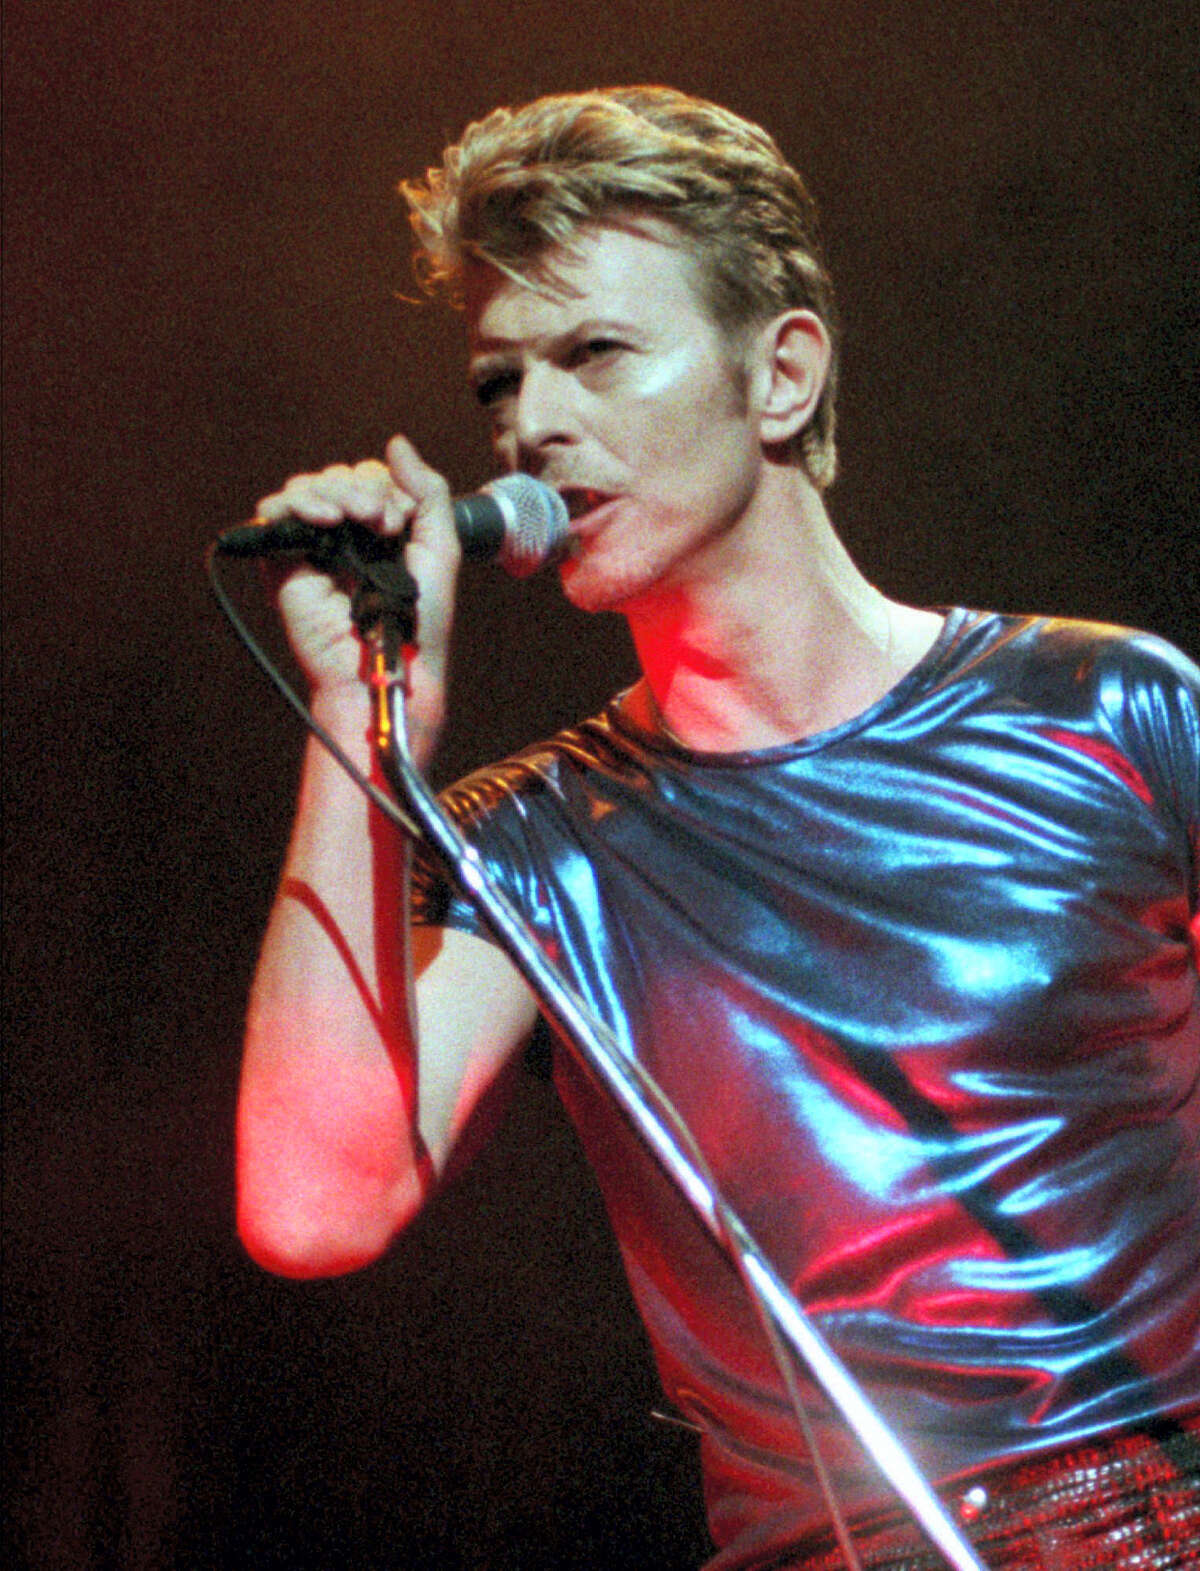 FILE - In this Sept. 14, 1995, file photo, David Bowie performs during a concert in Hartford, Conn. Bowie, the innovative and iconic singer whose illustrious career lasted five decades, died Monday, Jan. 11, 2016, after battling cancer for 18 months. He was 69. (AP Photo/Bob Child, File)